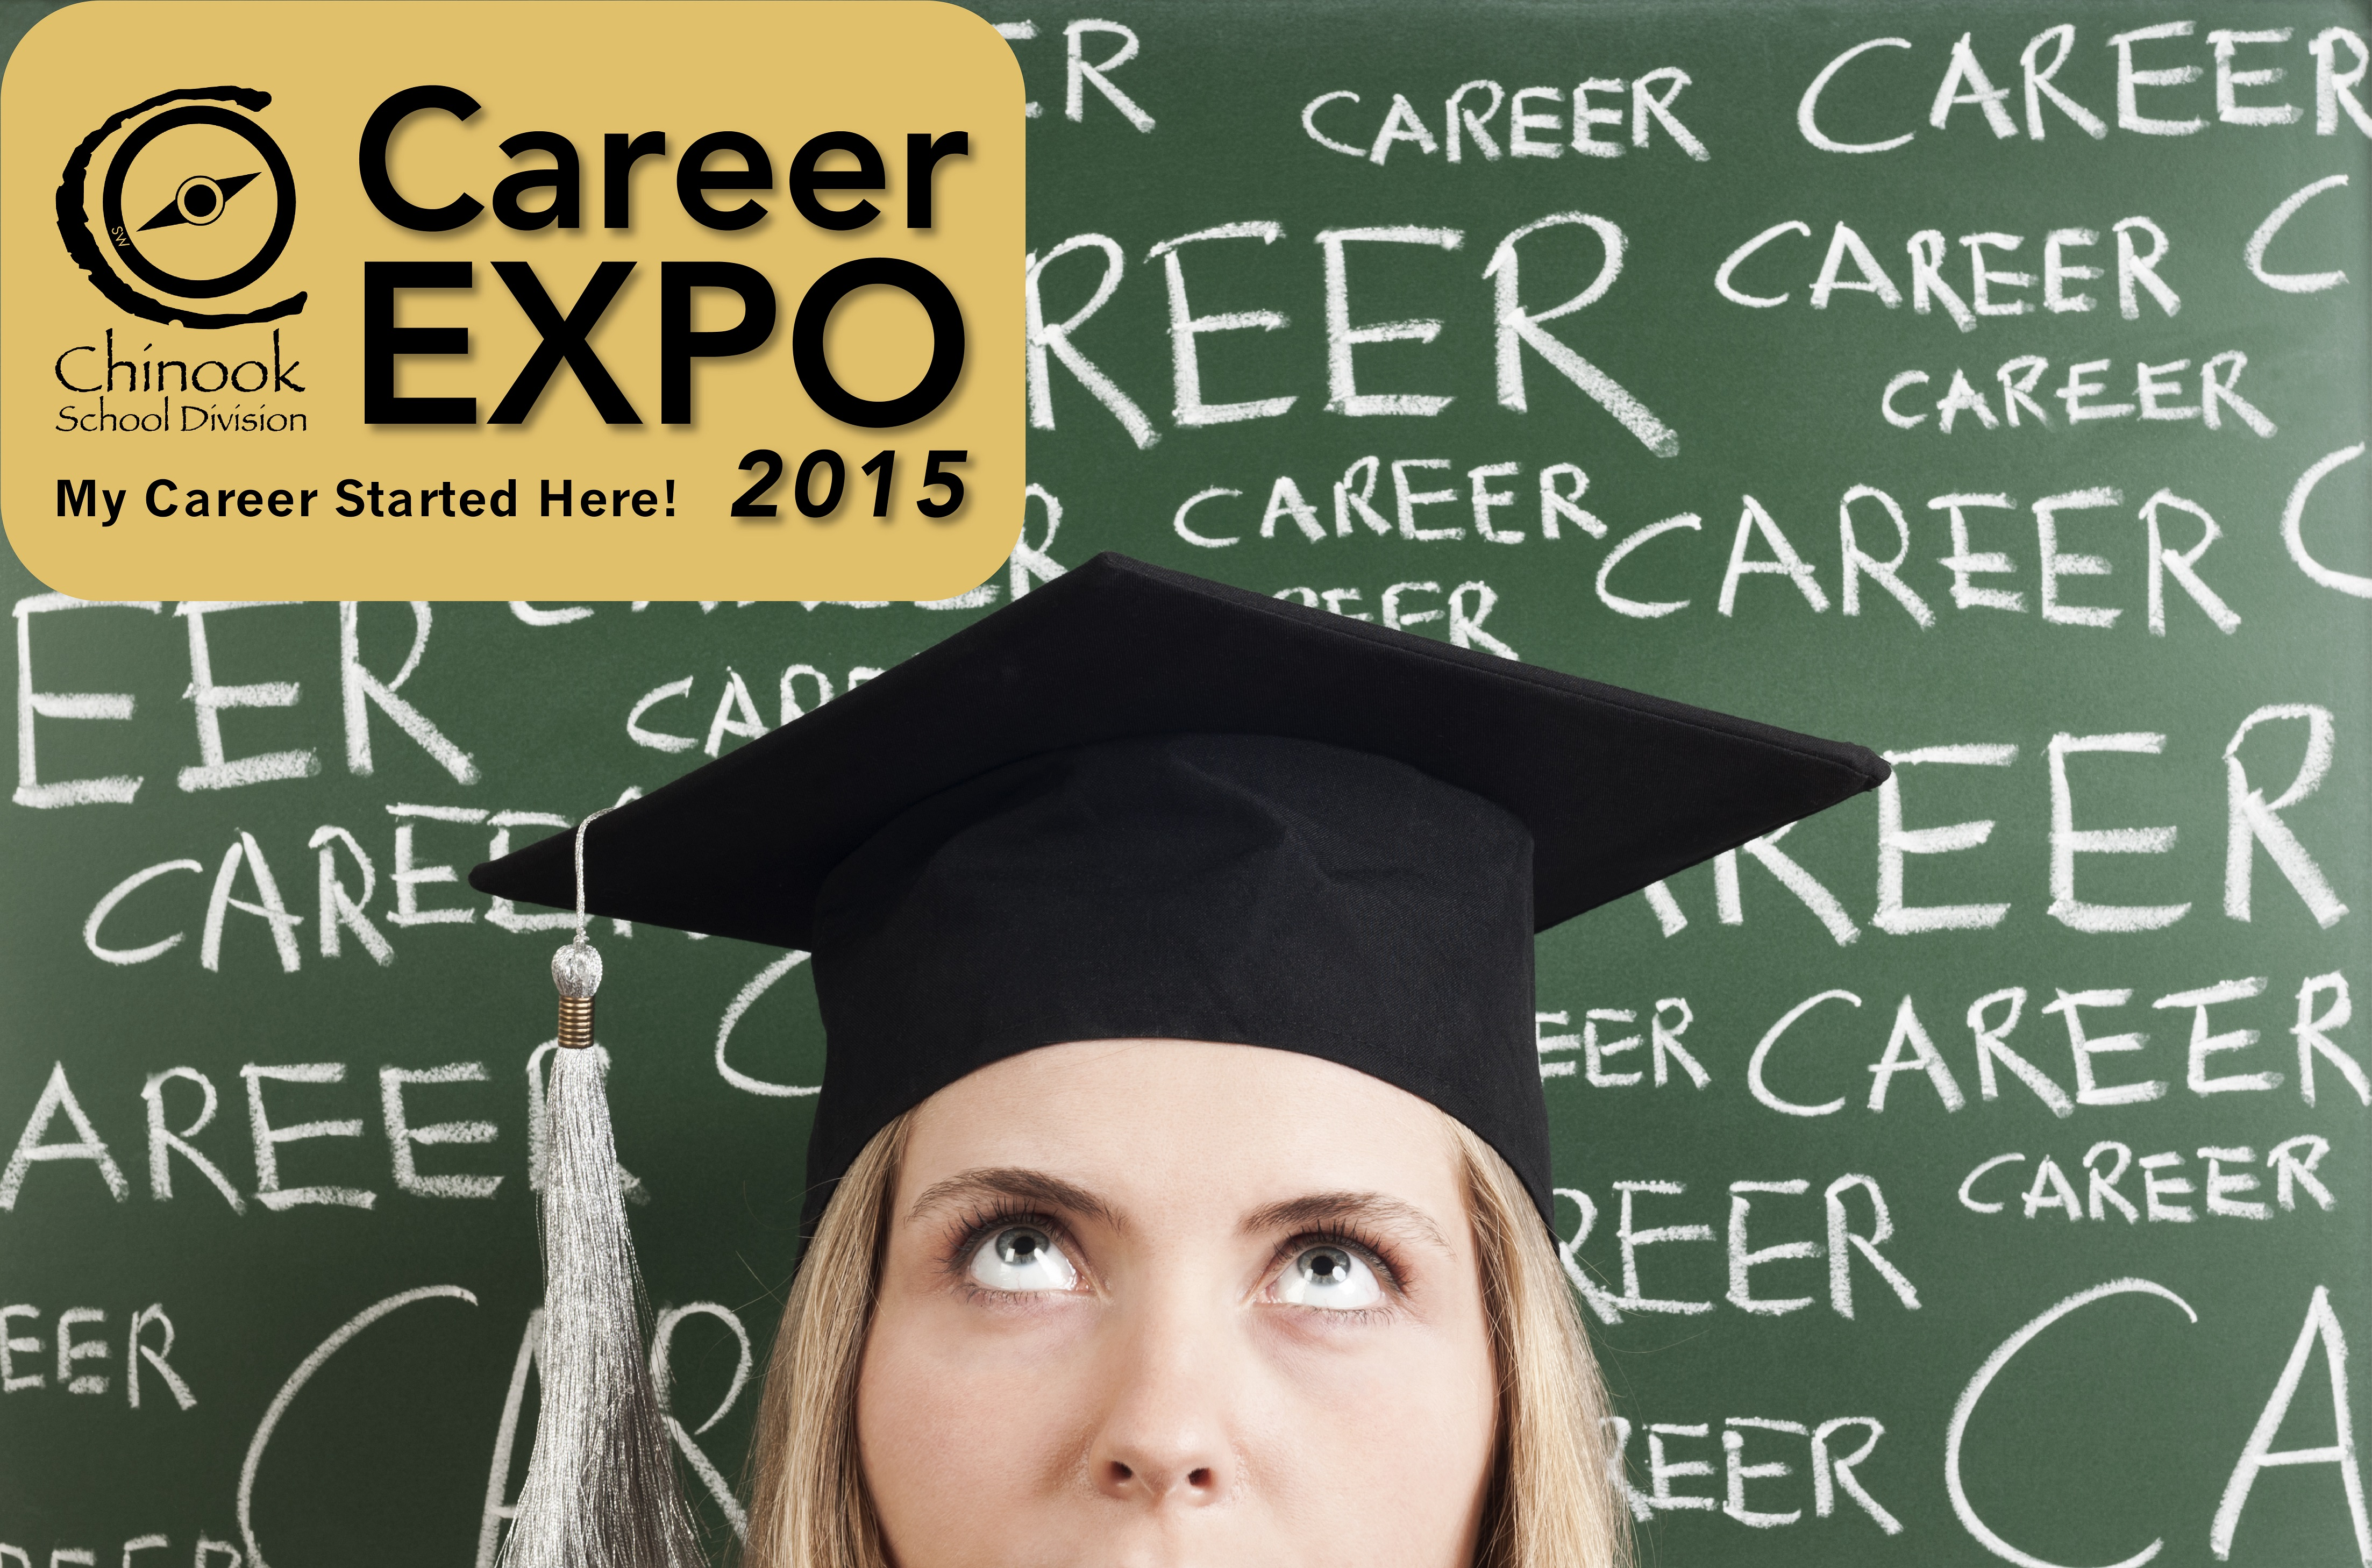 Career%20Expo%202015%20promo%20image-02.jpg